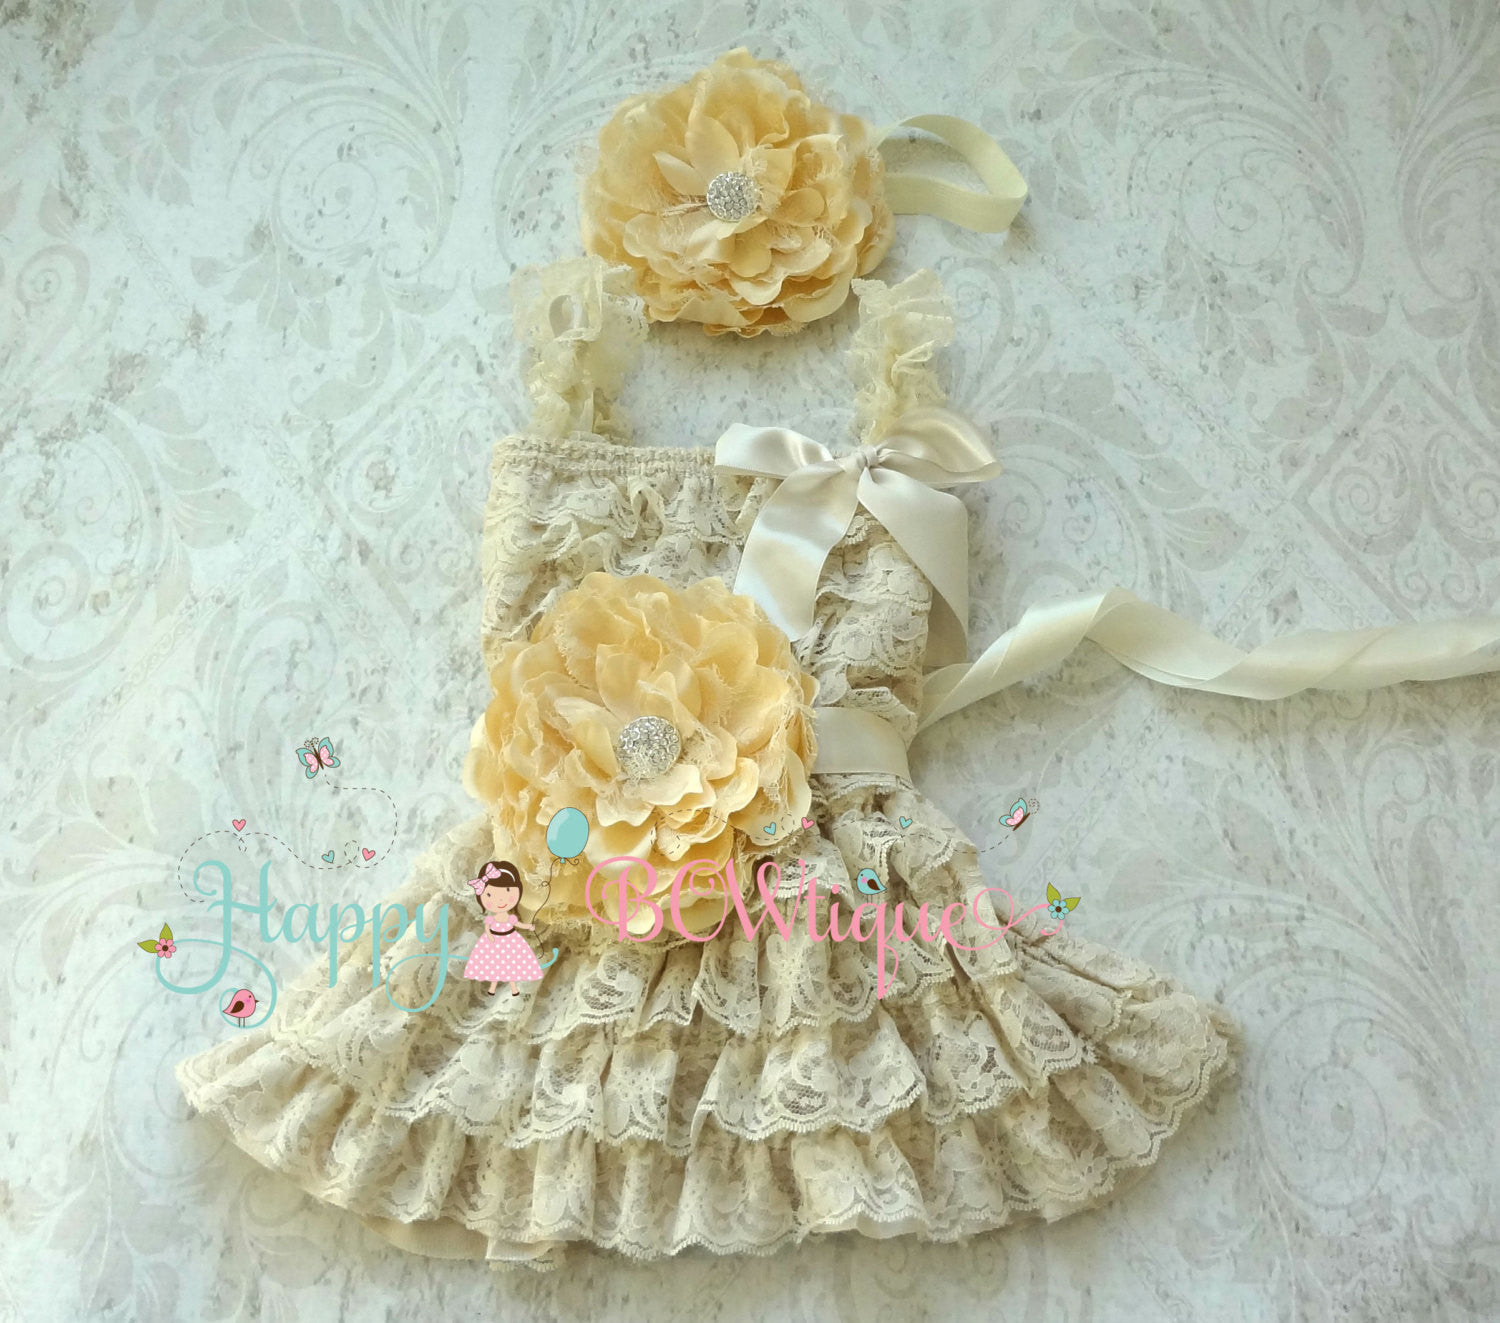 Champagne Lace Dress, Girls dress - Happy BOWtique - children's clothing, Baby Girl clothing